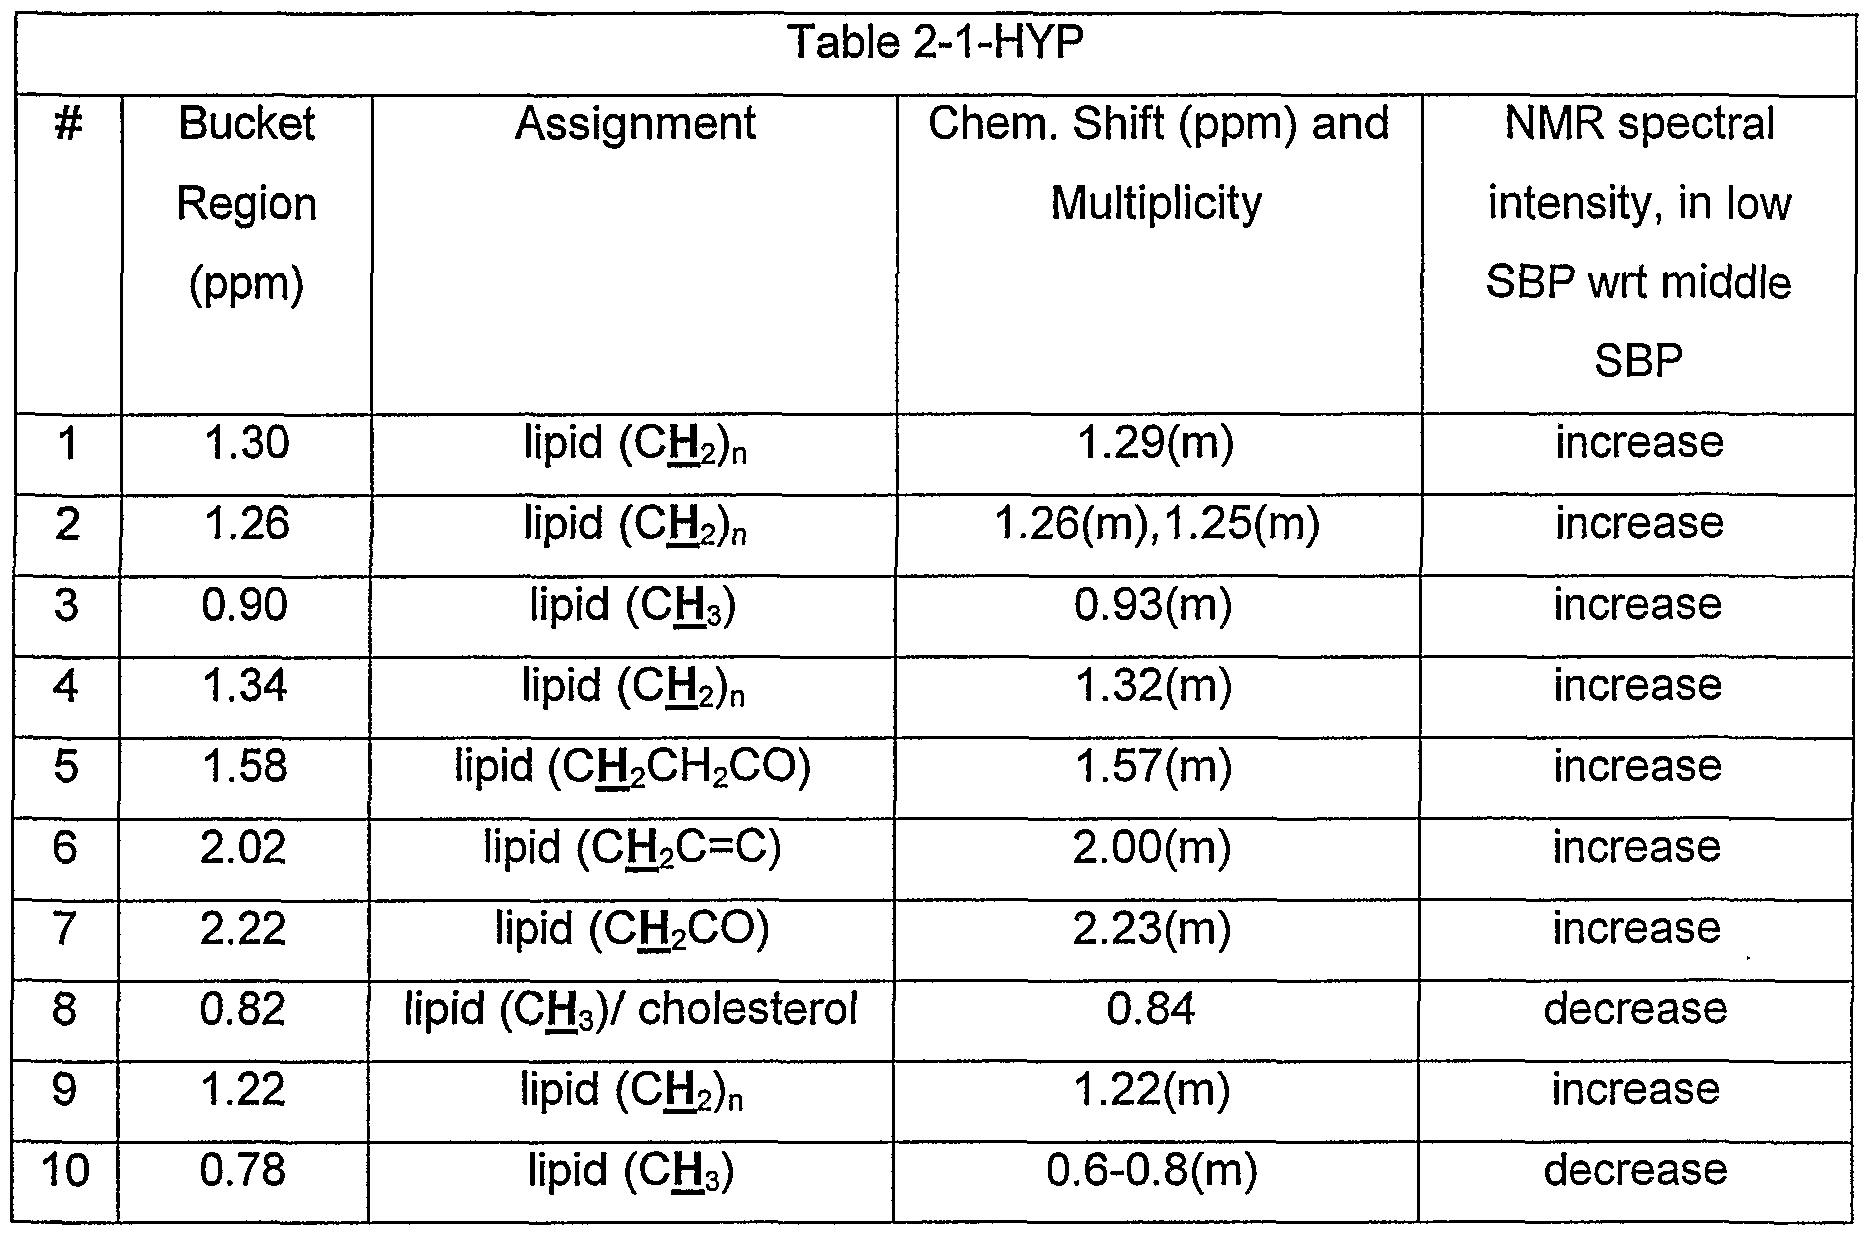 WO2002086478A2 - Methods for analysis of spectral data and their